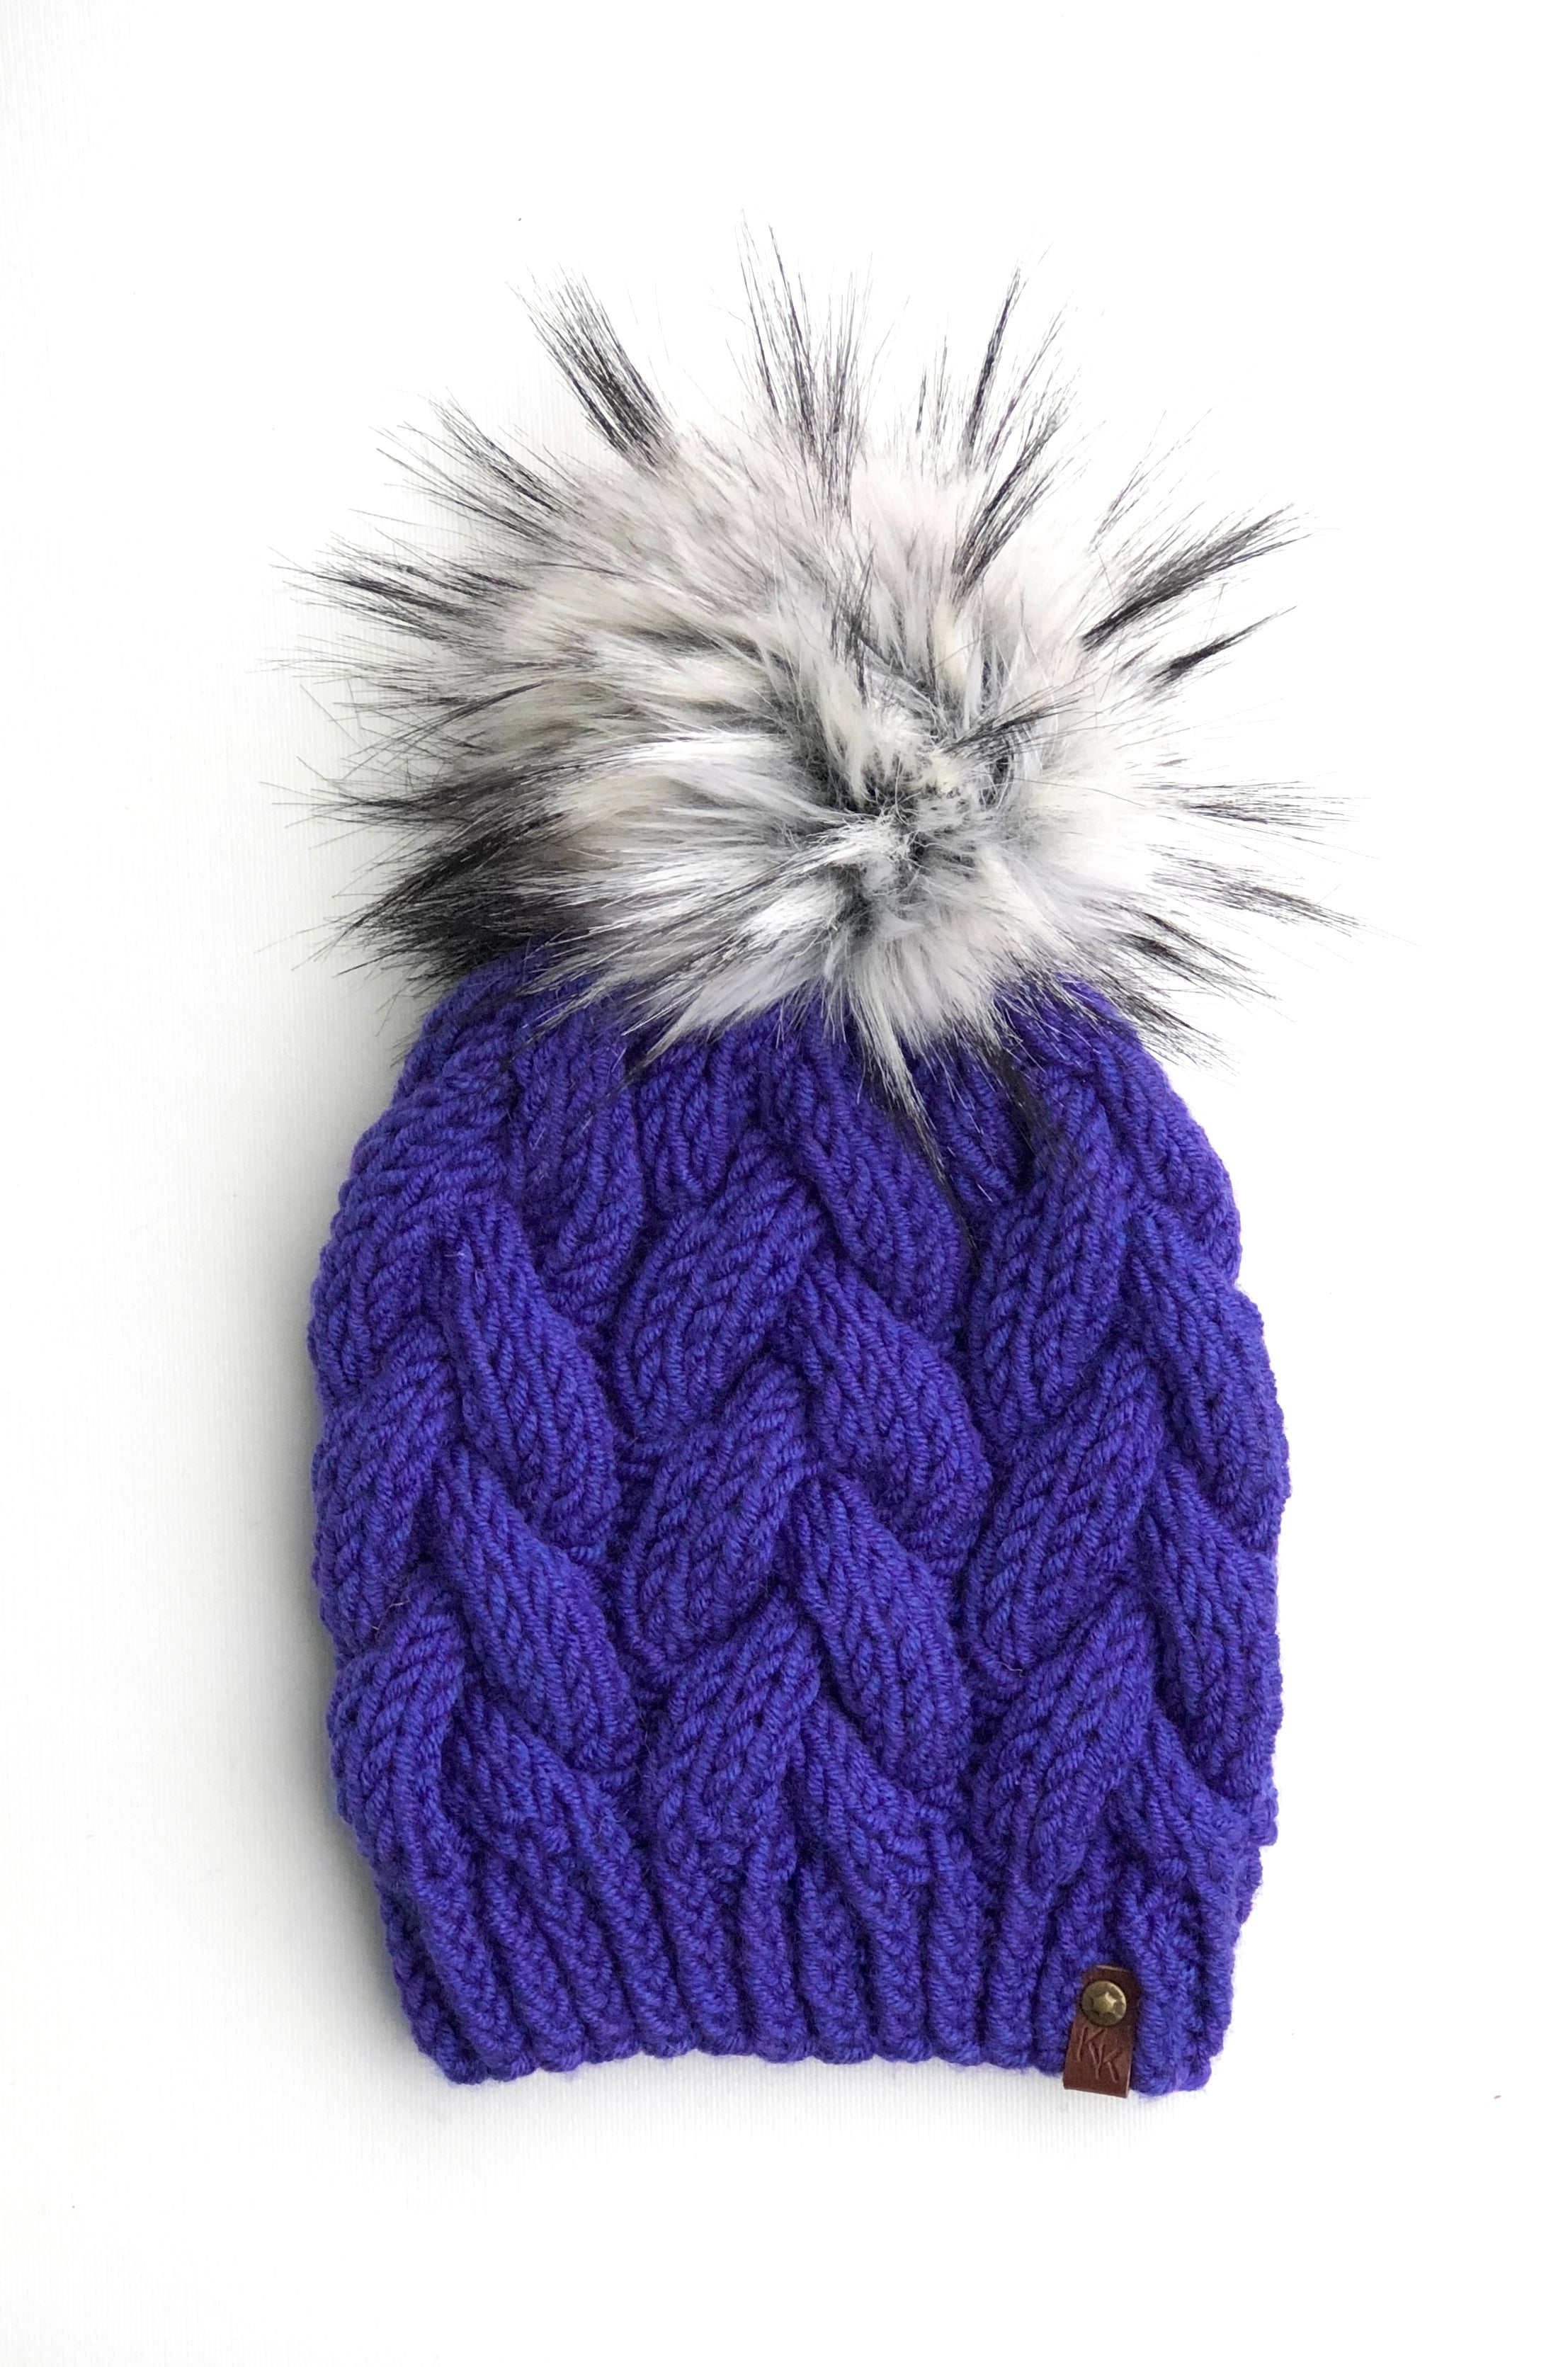 Violet Wool Spun Hand Knit Braided Cable Beanie Hat - KitchenKlutter